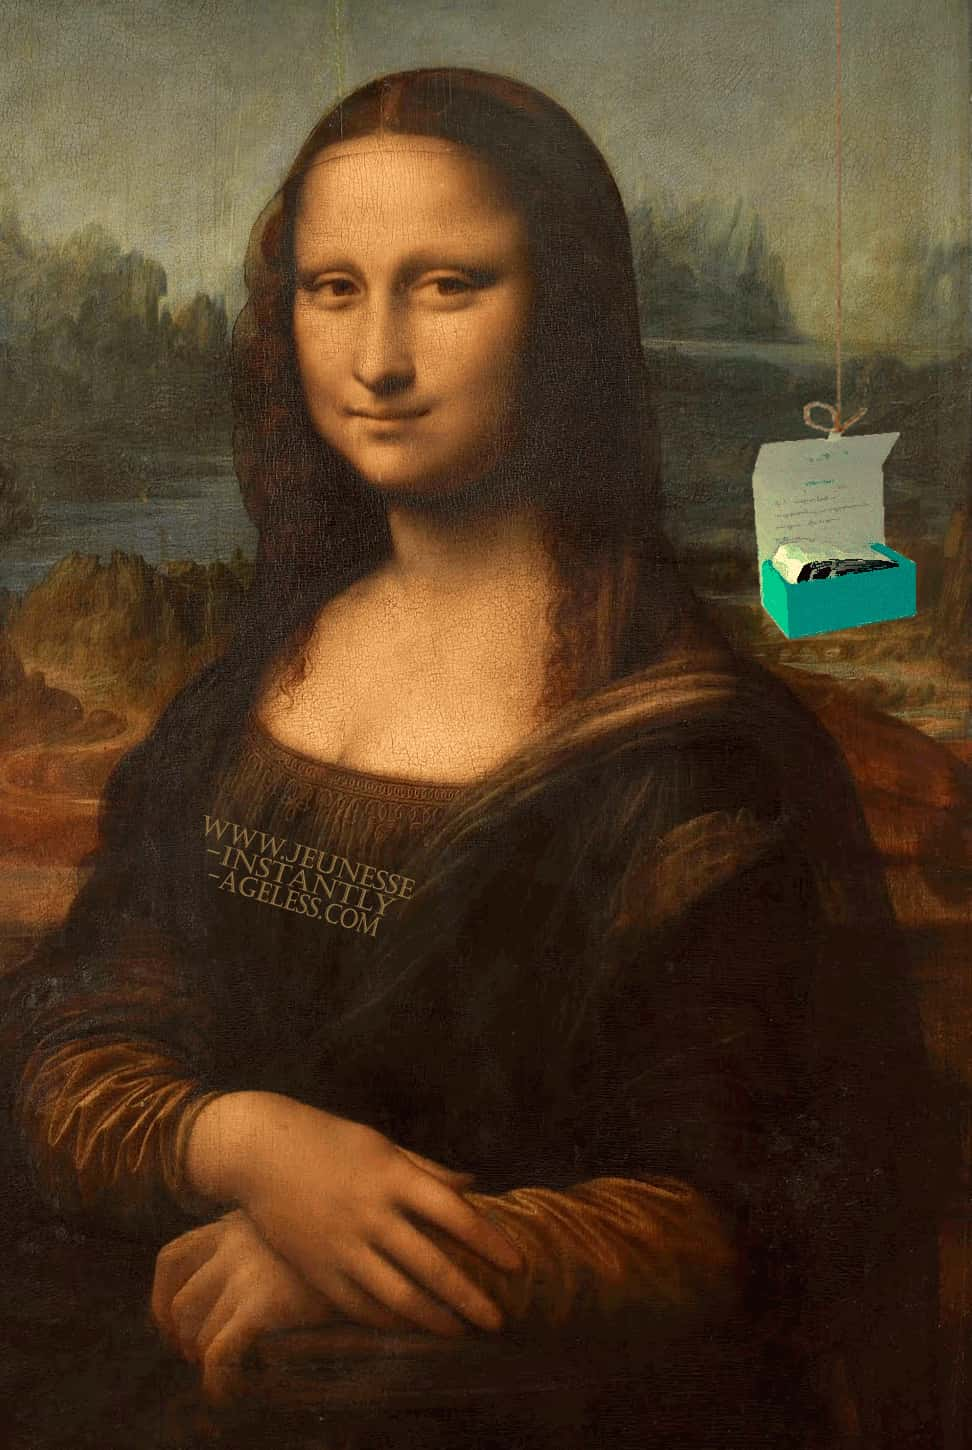 Инстантли Эйджлесс и Мона Лиза. Mona Lisa with Instantly Ageless.